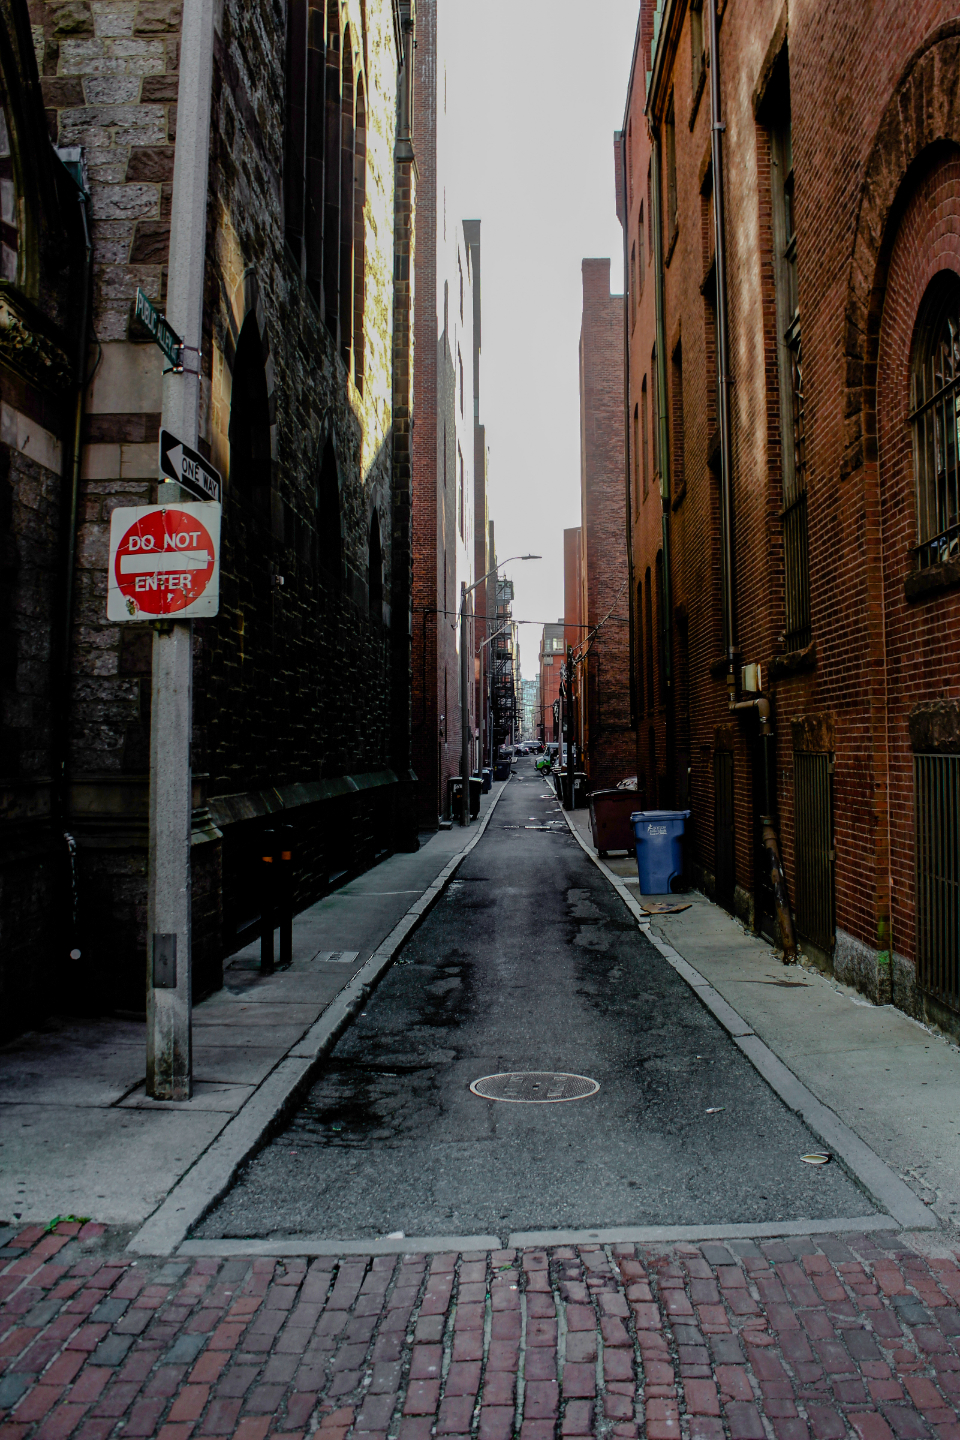 alley city street downtown brick cobblestone buildings deserted exterior urban sign narrow architecture